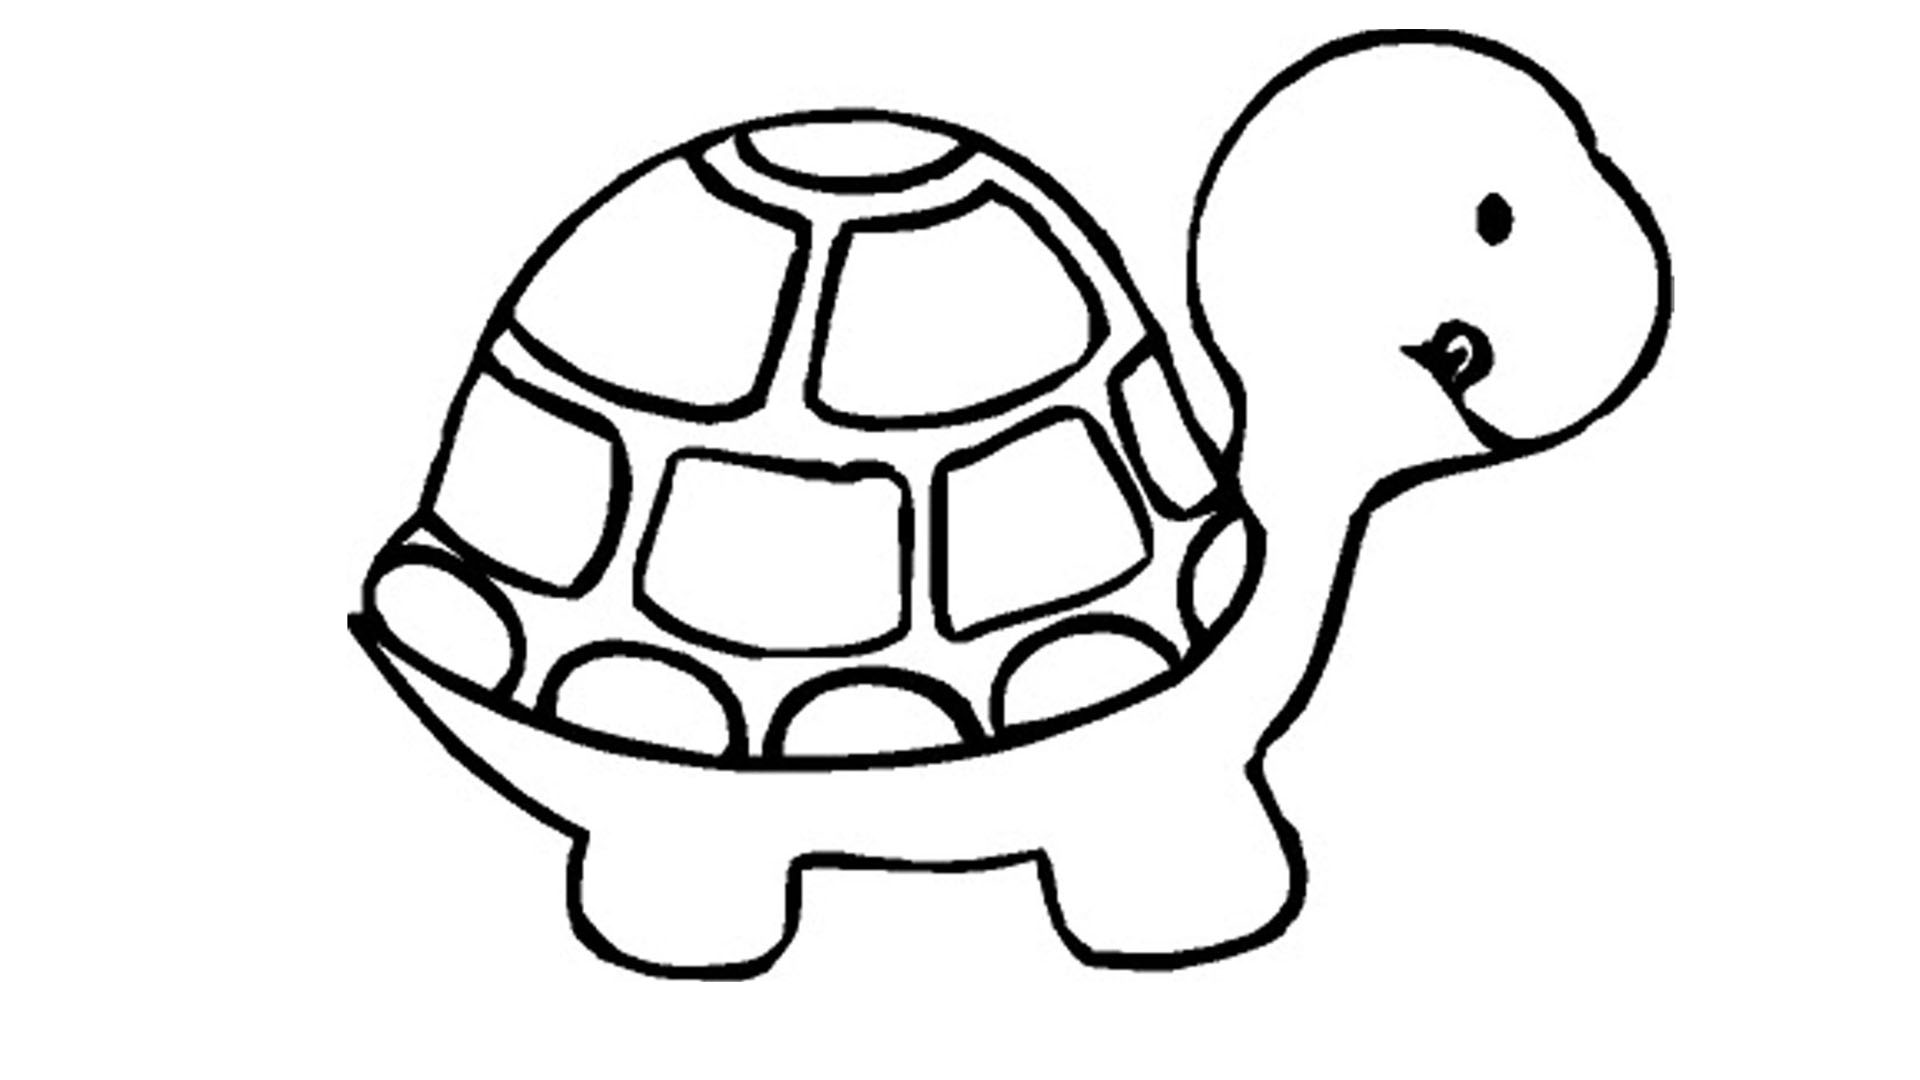 29 coloring pages of turtle - Print Color Craft